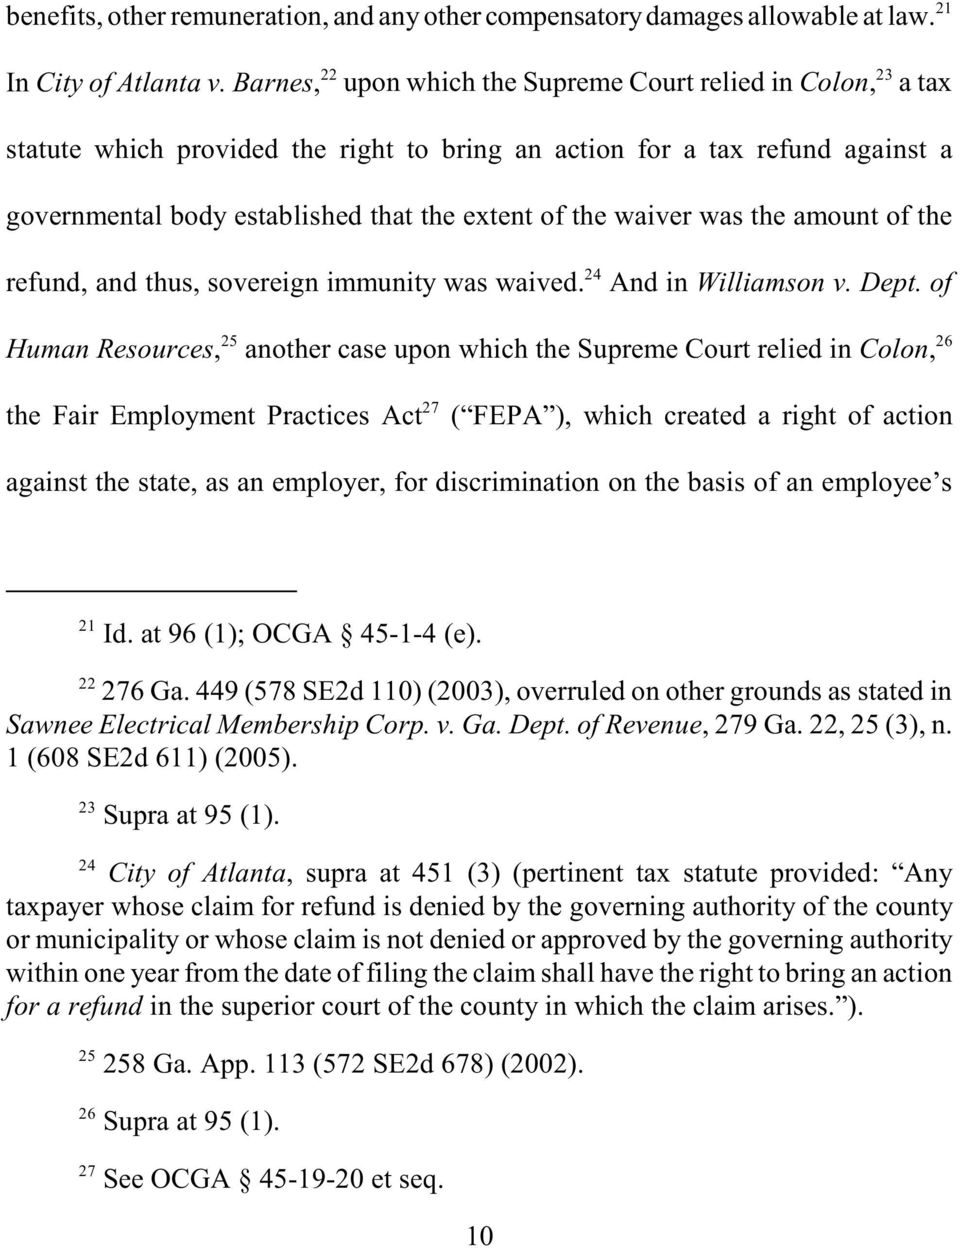 waiver was the amount of the refund, and thus, sovereign immunity was waived. 24 And in Williamson v. Dept.